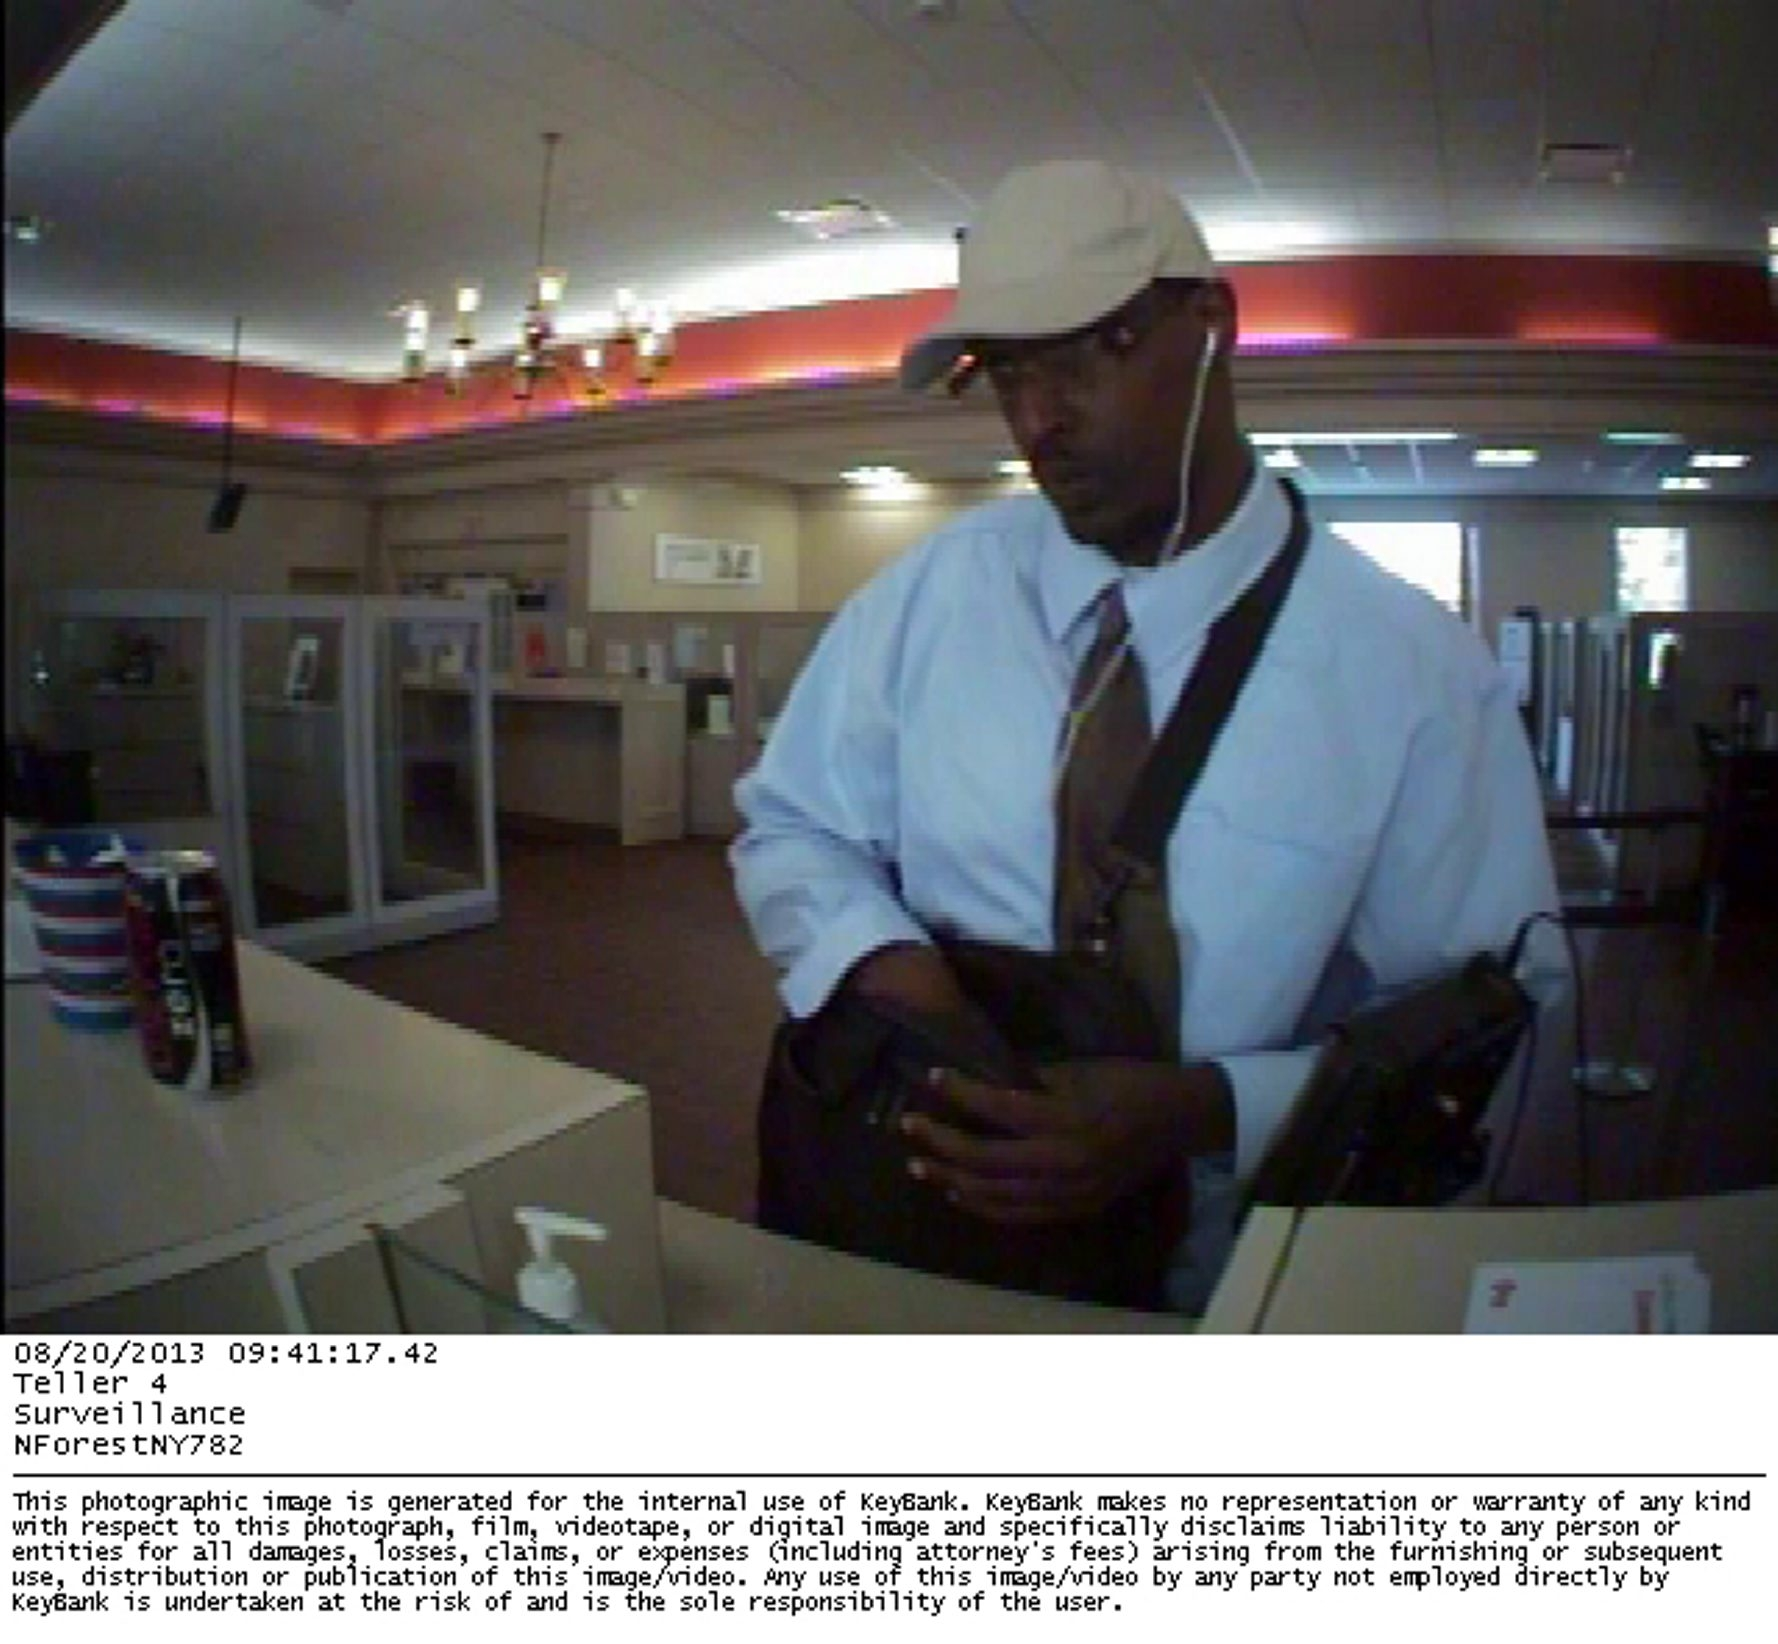 Amherst police are seeking this man, the suspect in a robbery Tuesday at a Key Bank branch at 5200 Main St. in Williamsville. The image comes from a surveillance camera inside the bank.